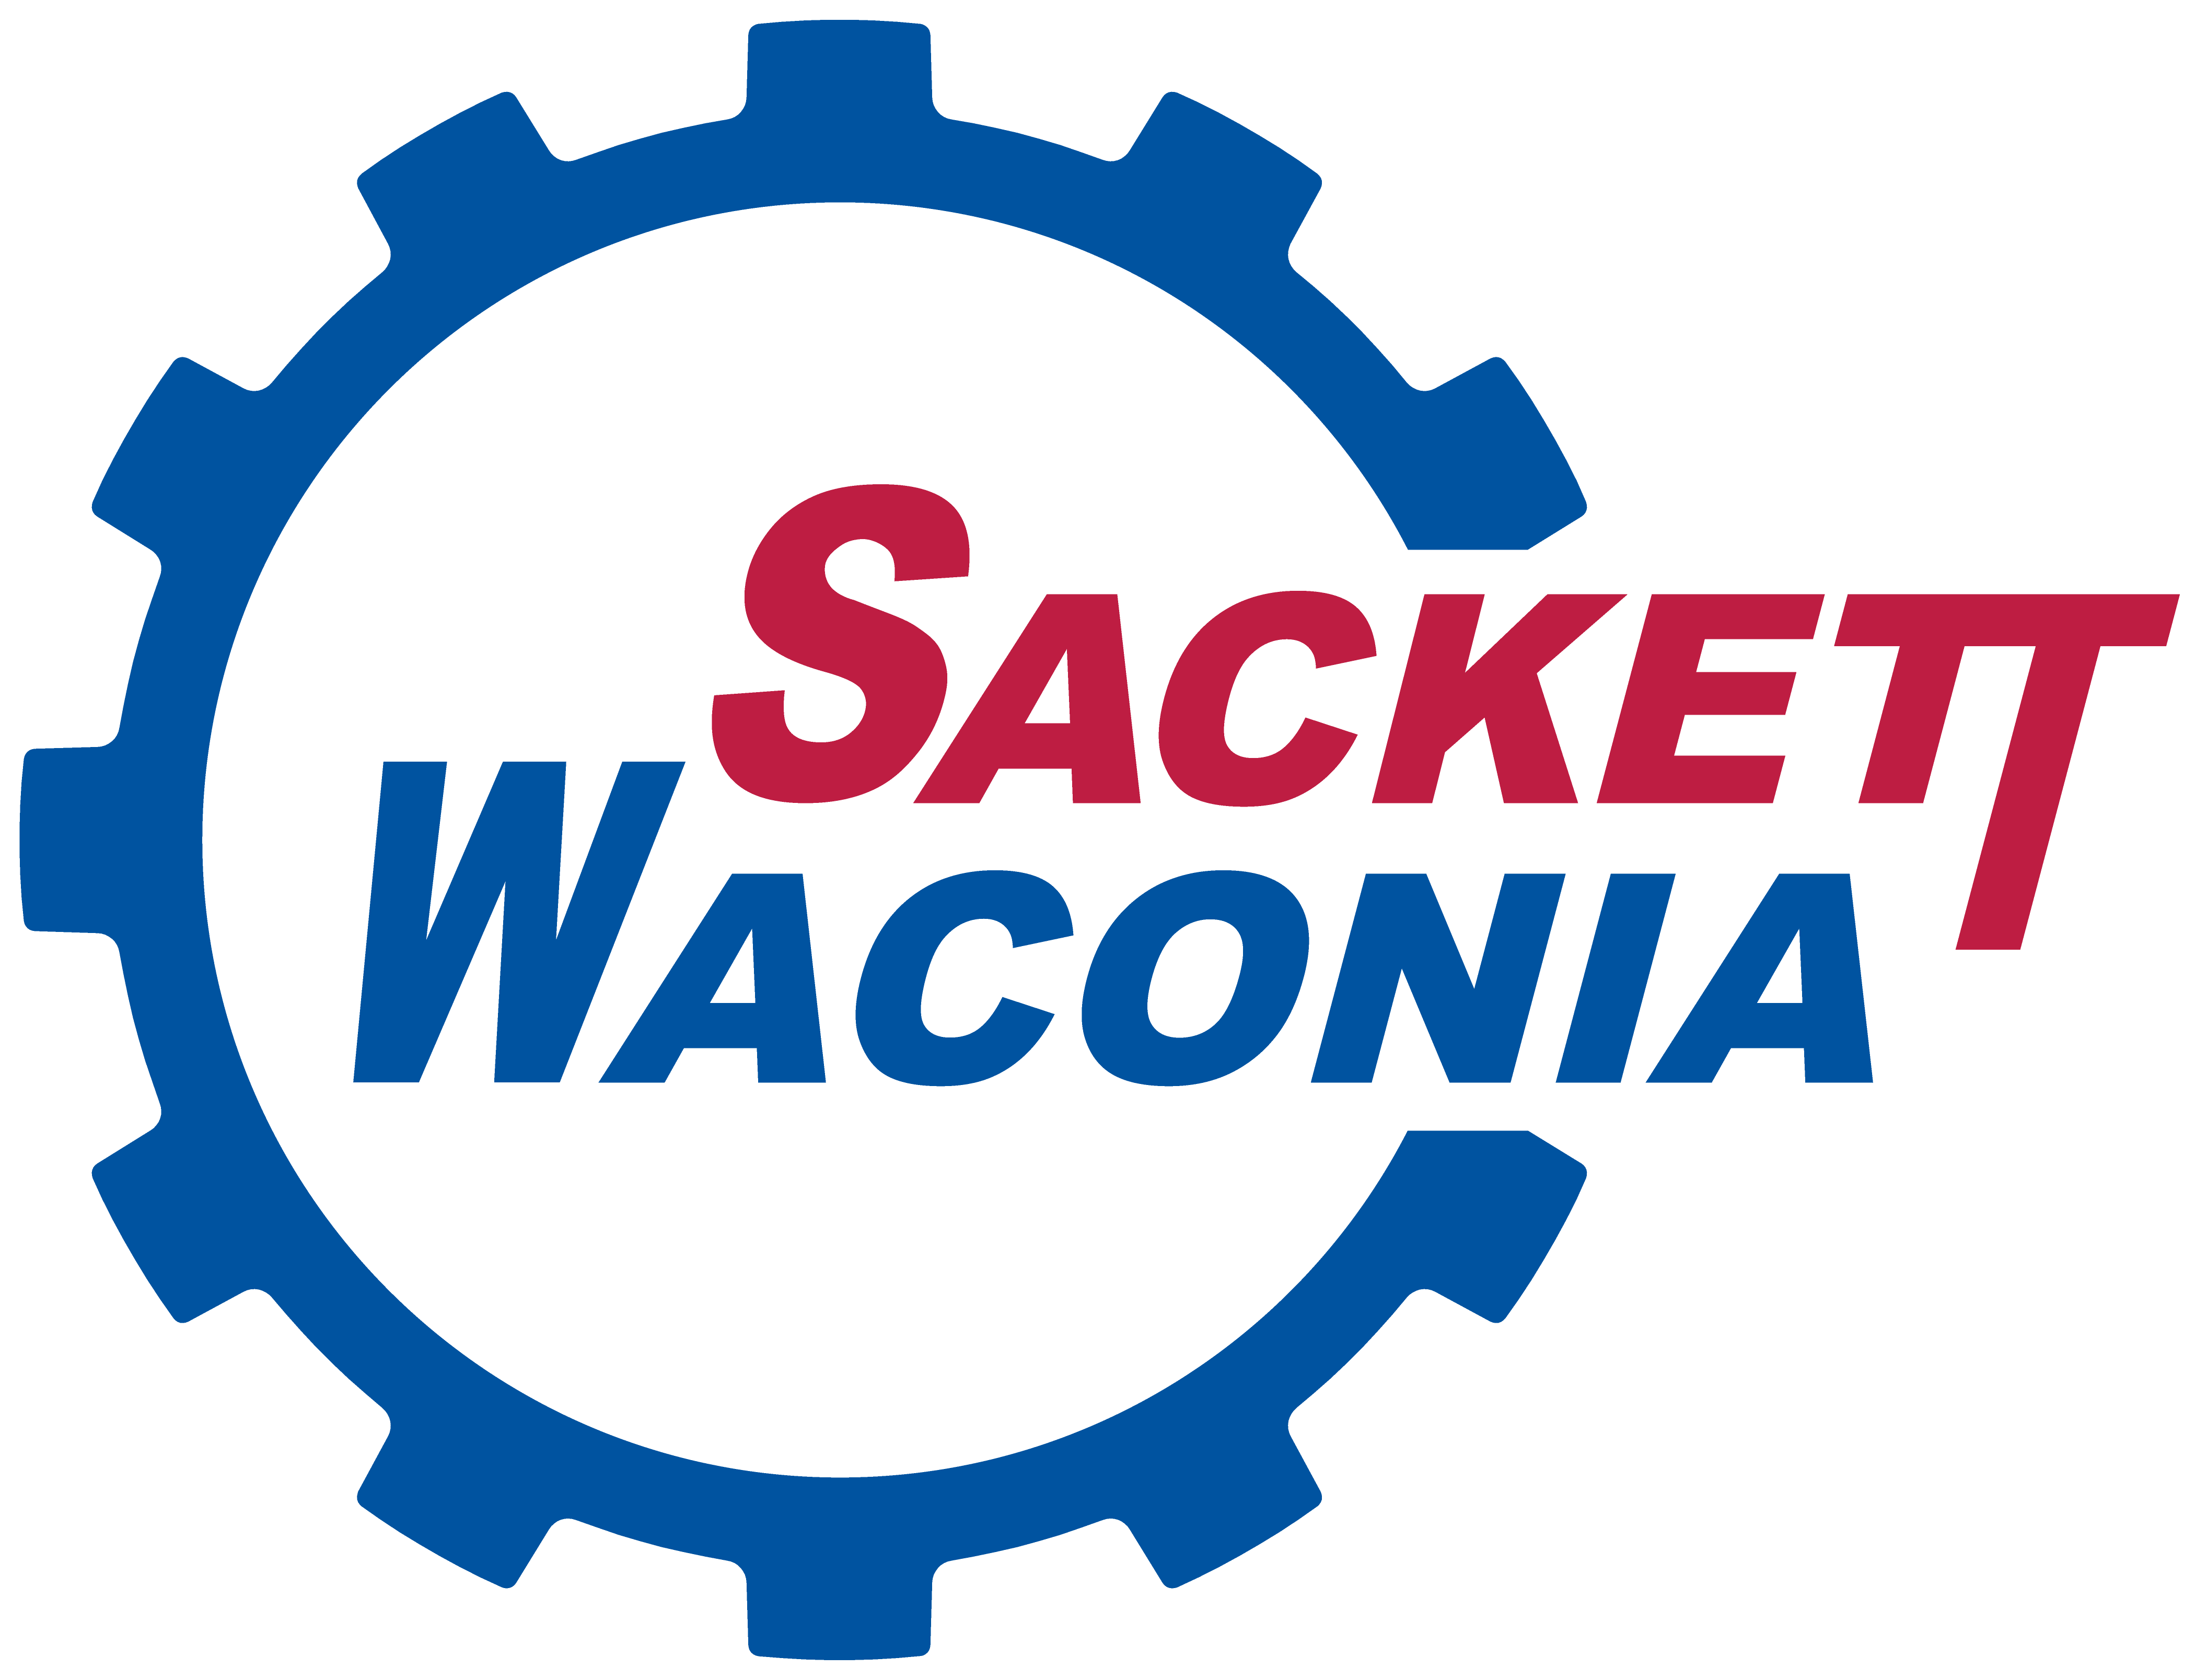 Sackett-Waconia in Baltimore, MD. Bulk material handling & processing equipment.